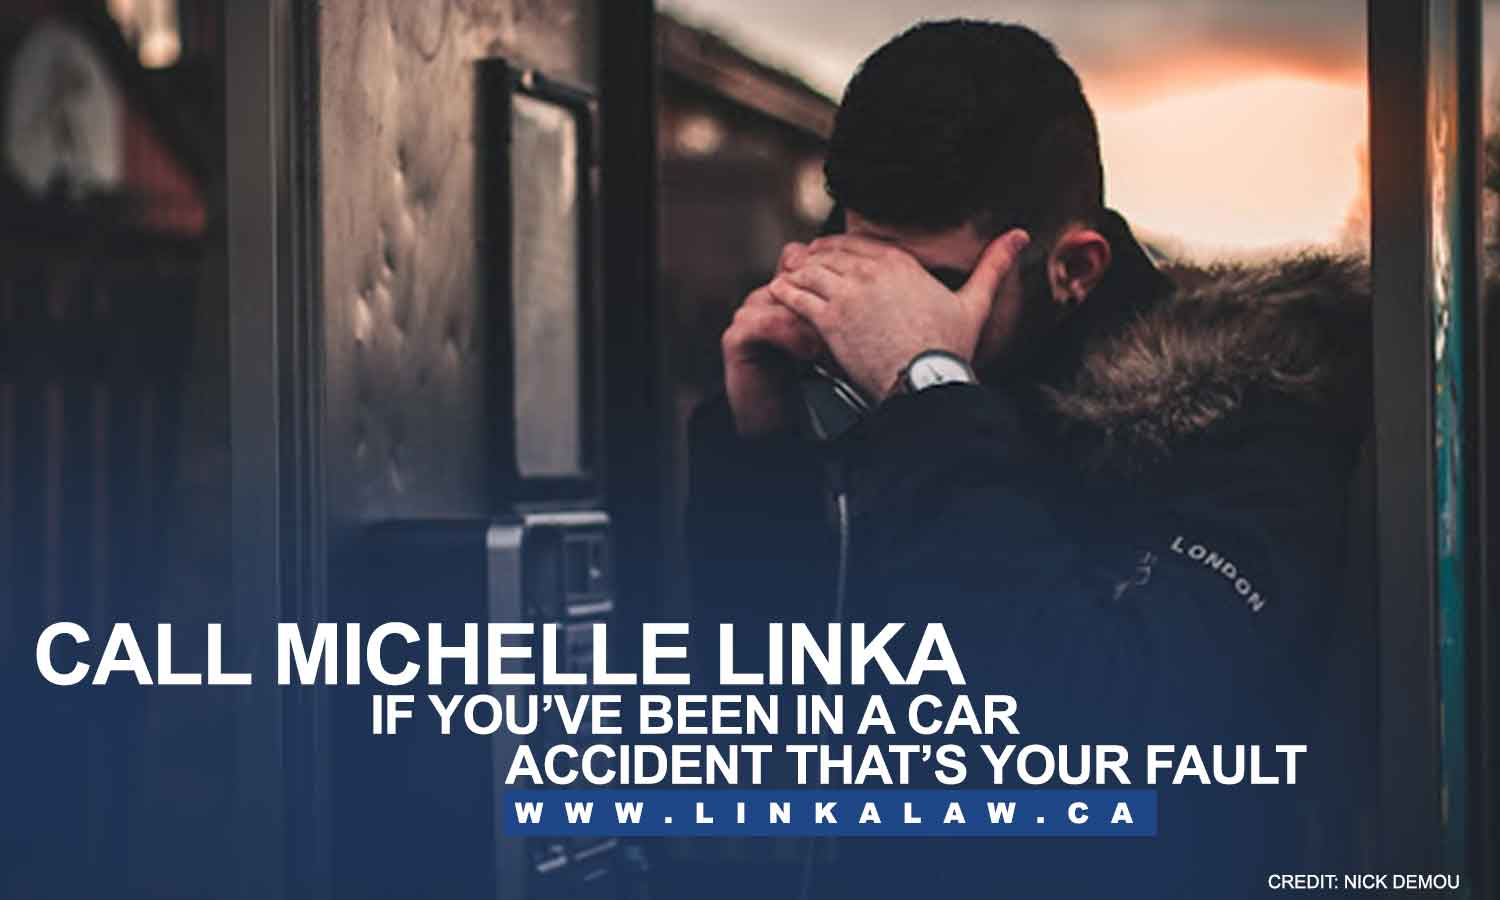 Call Michelle Linka if you've been in a car accident that's your fault